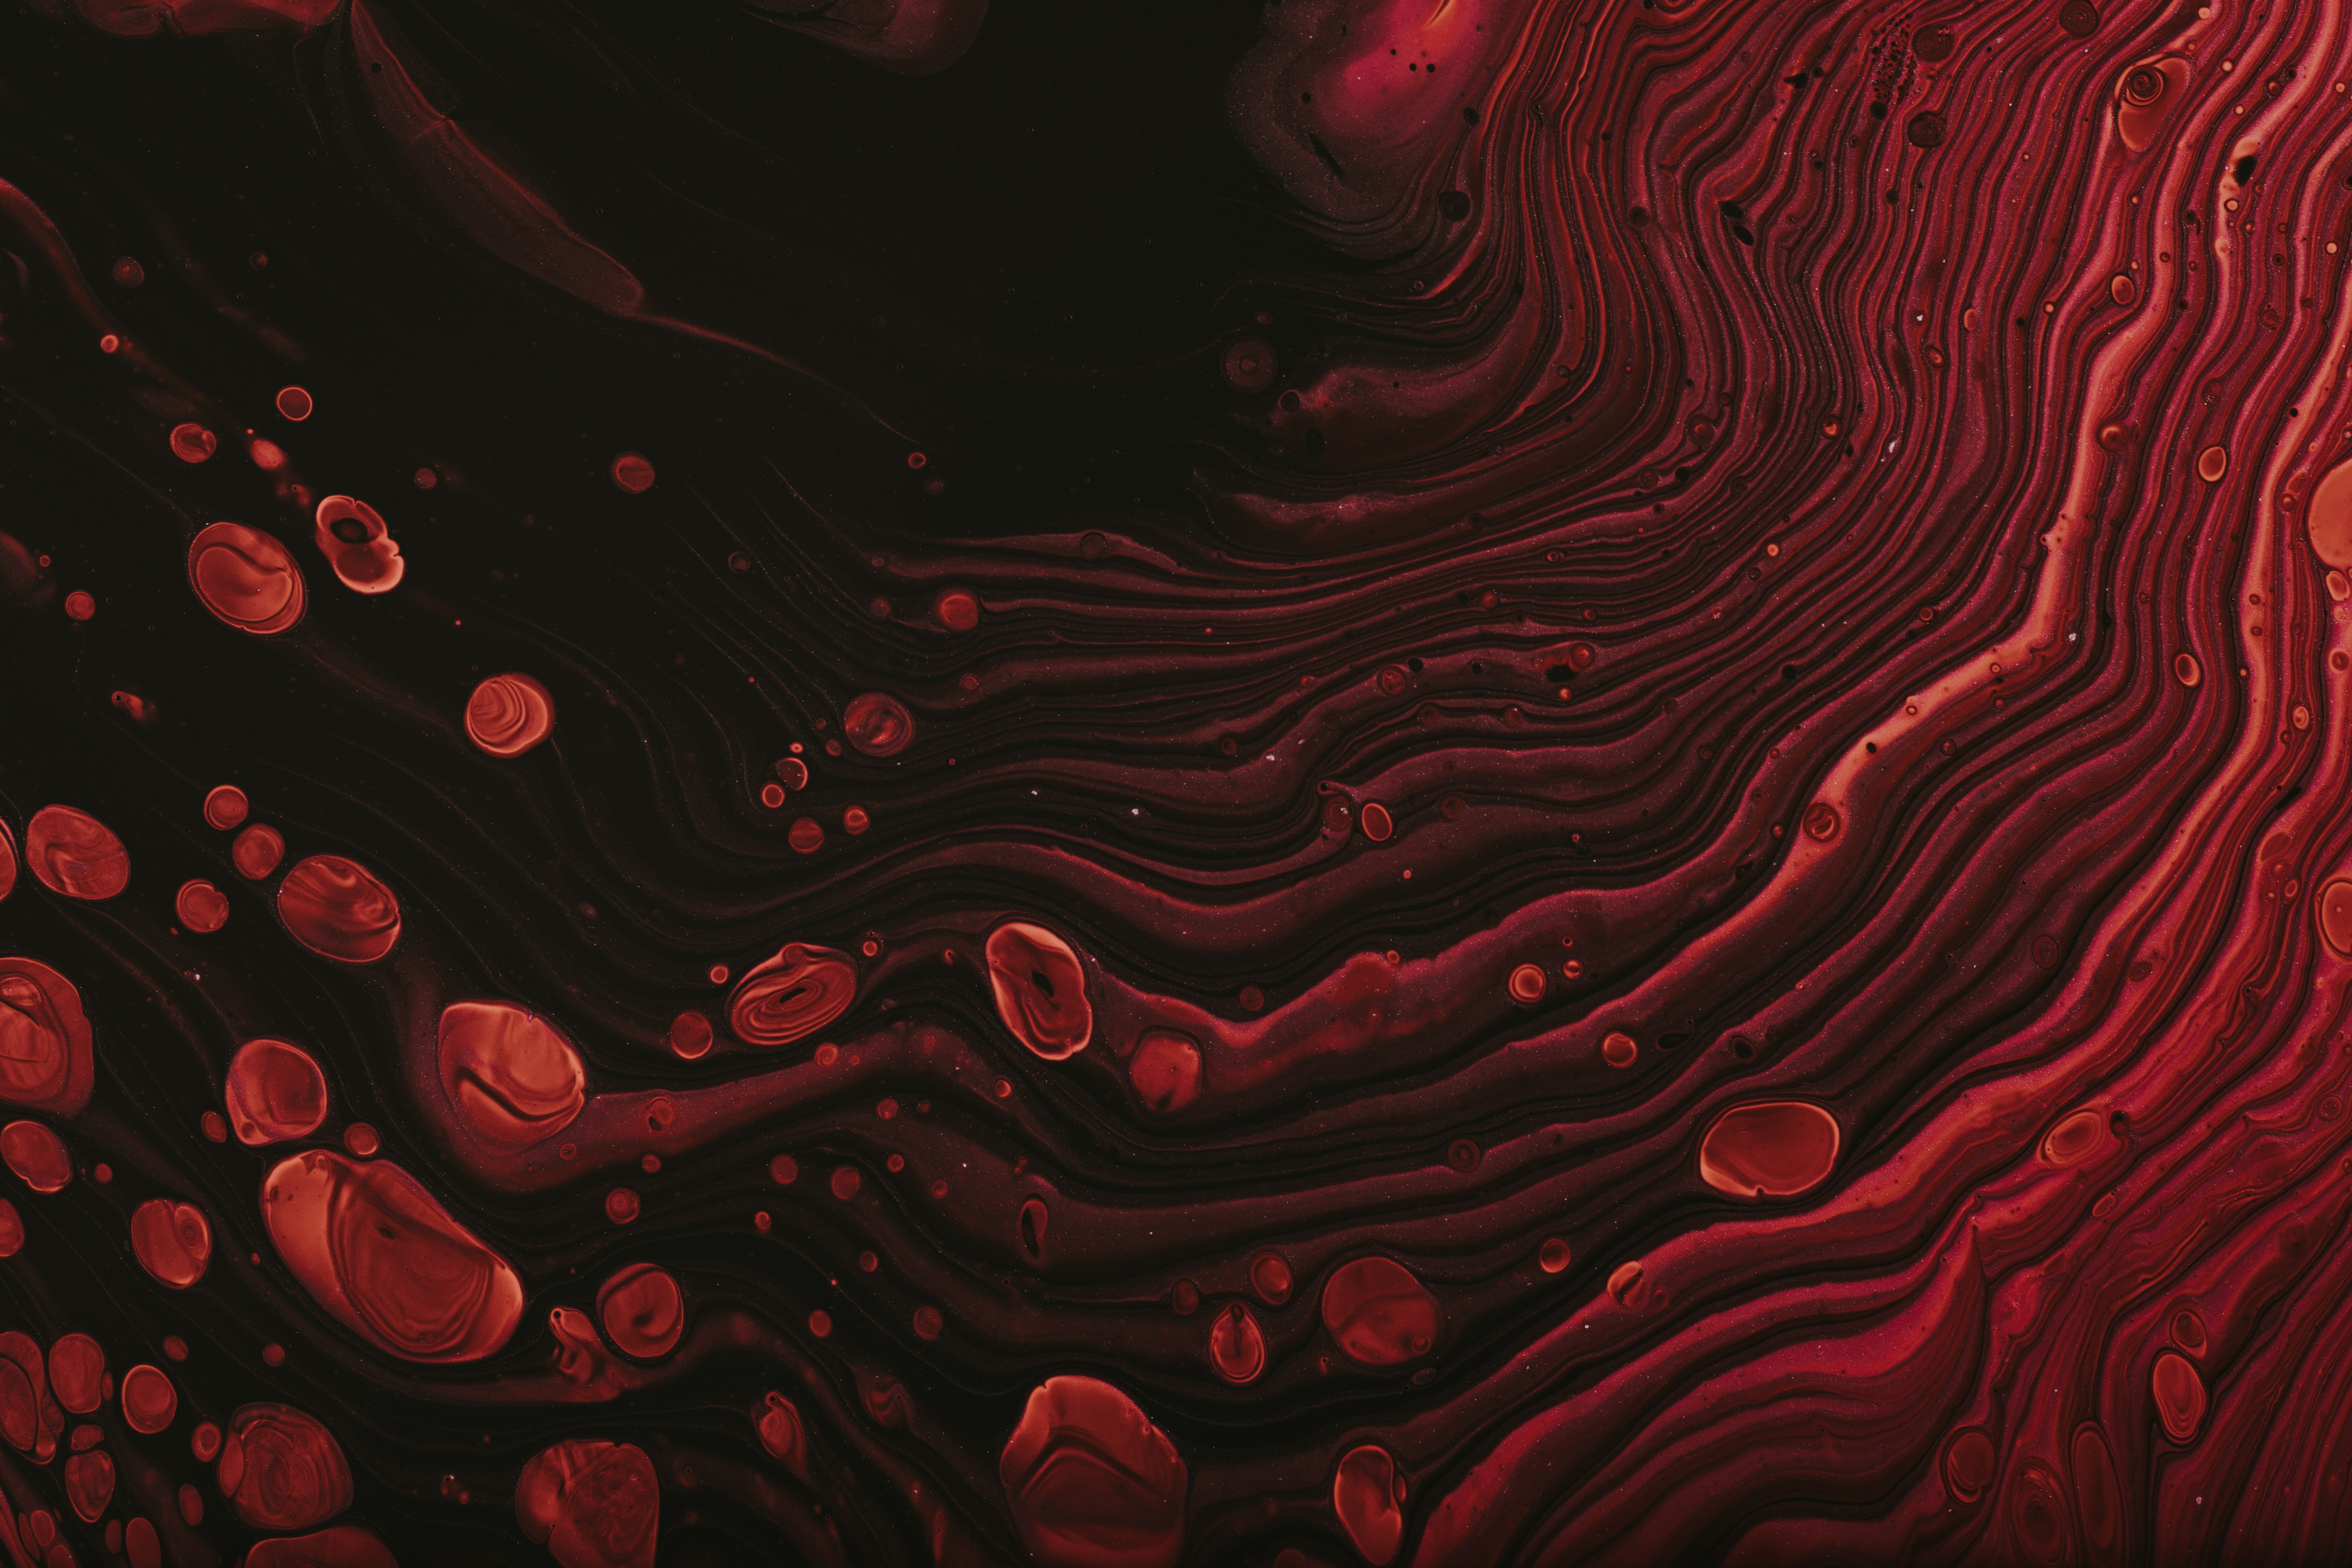 110495 download wallpaper Abstract, Stripes, Streaks, Lines, Paint, Liquid screensavers and pictures for free